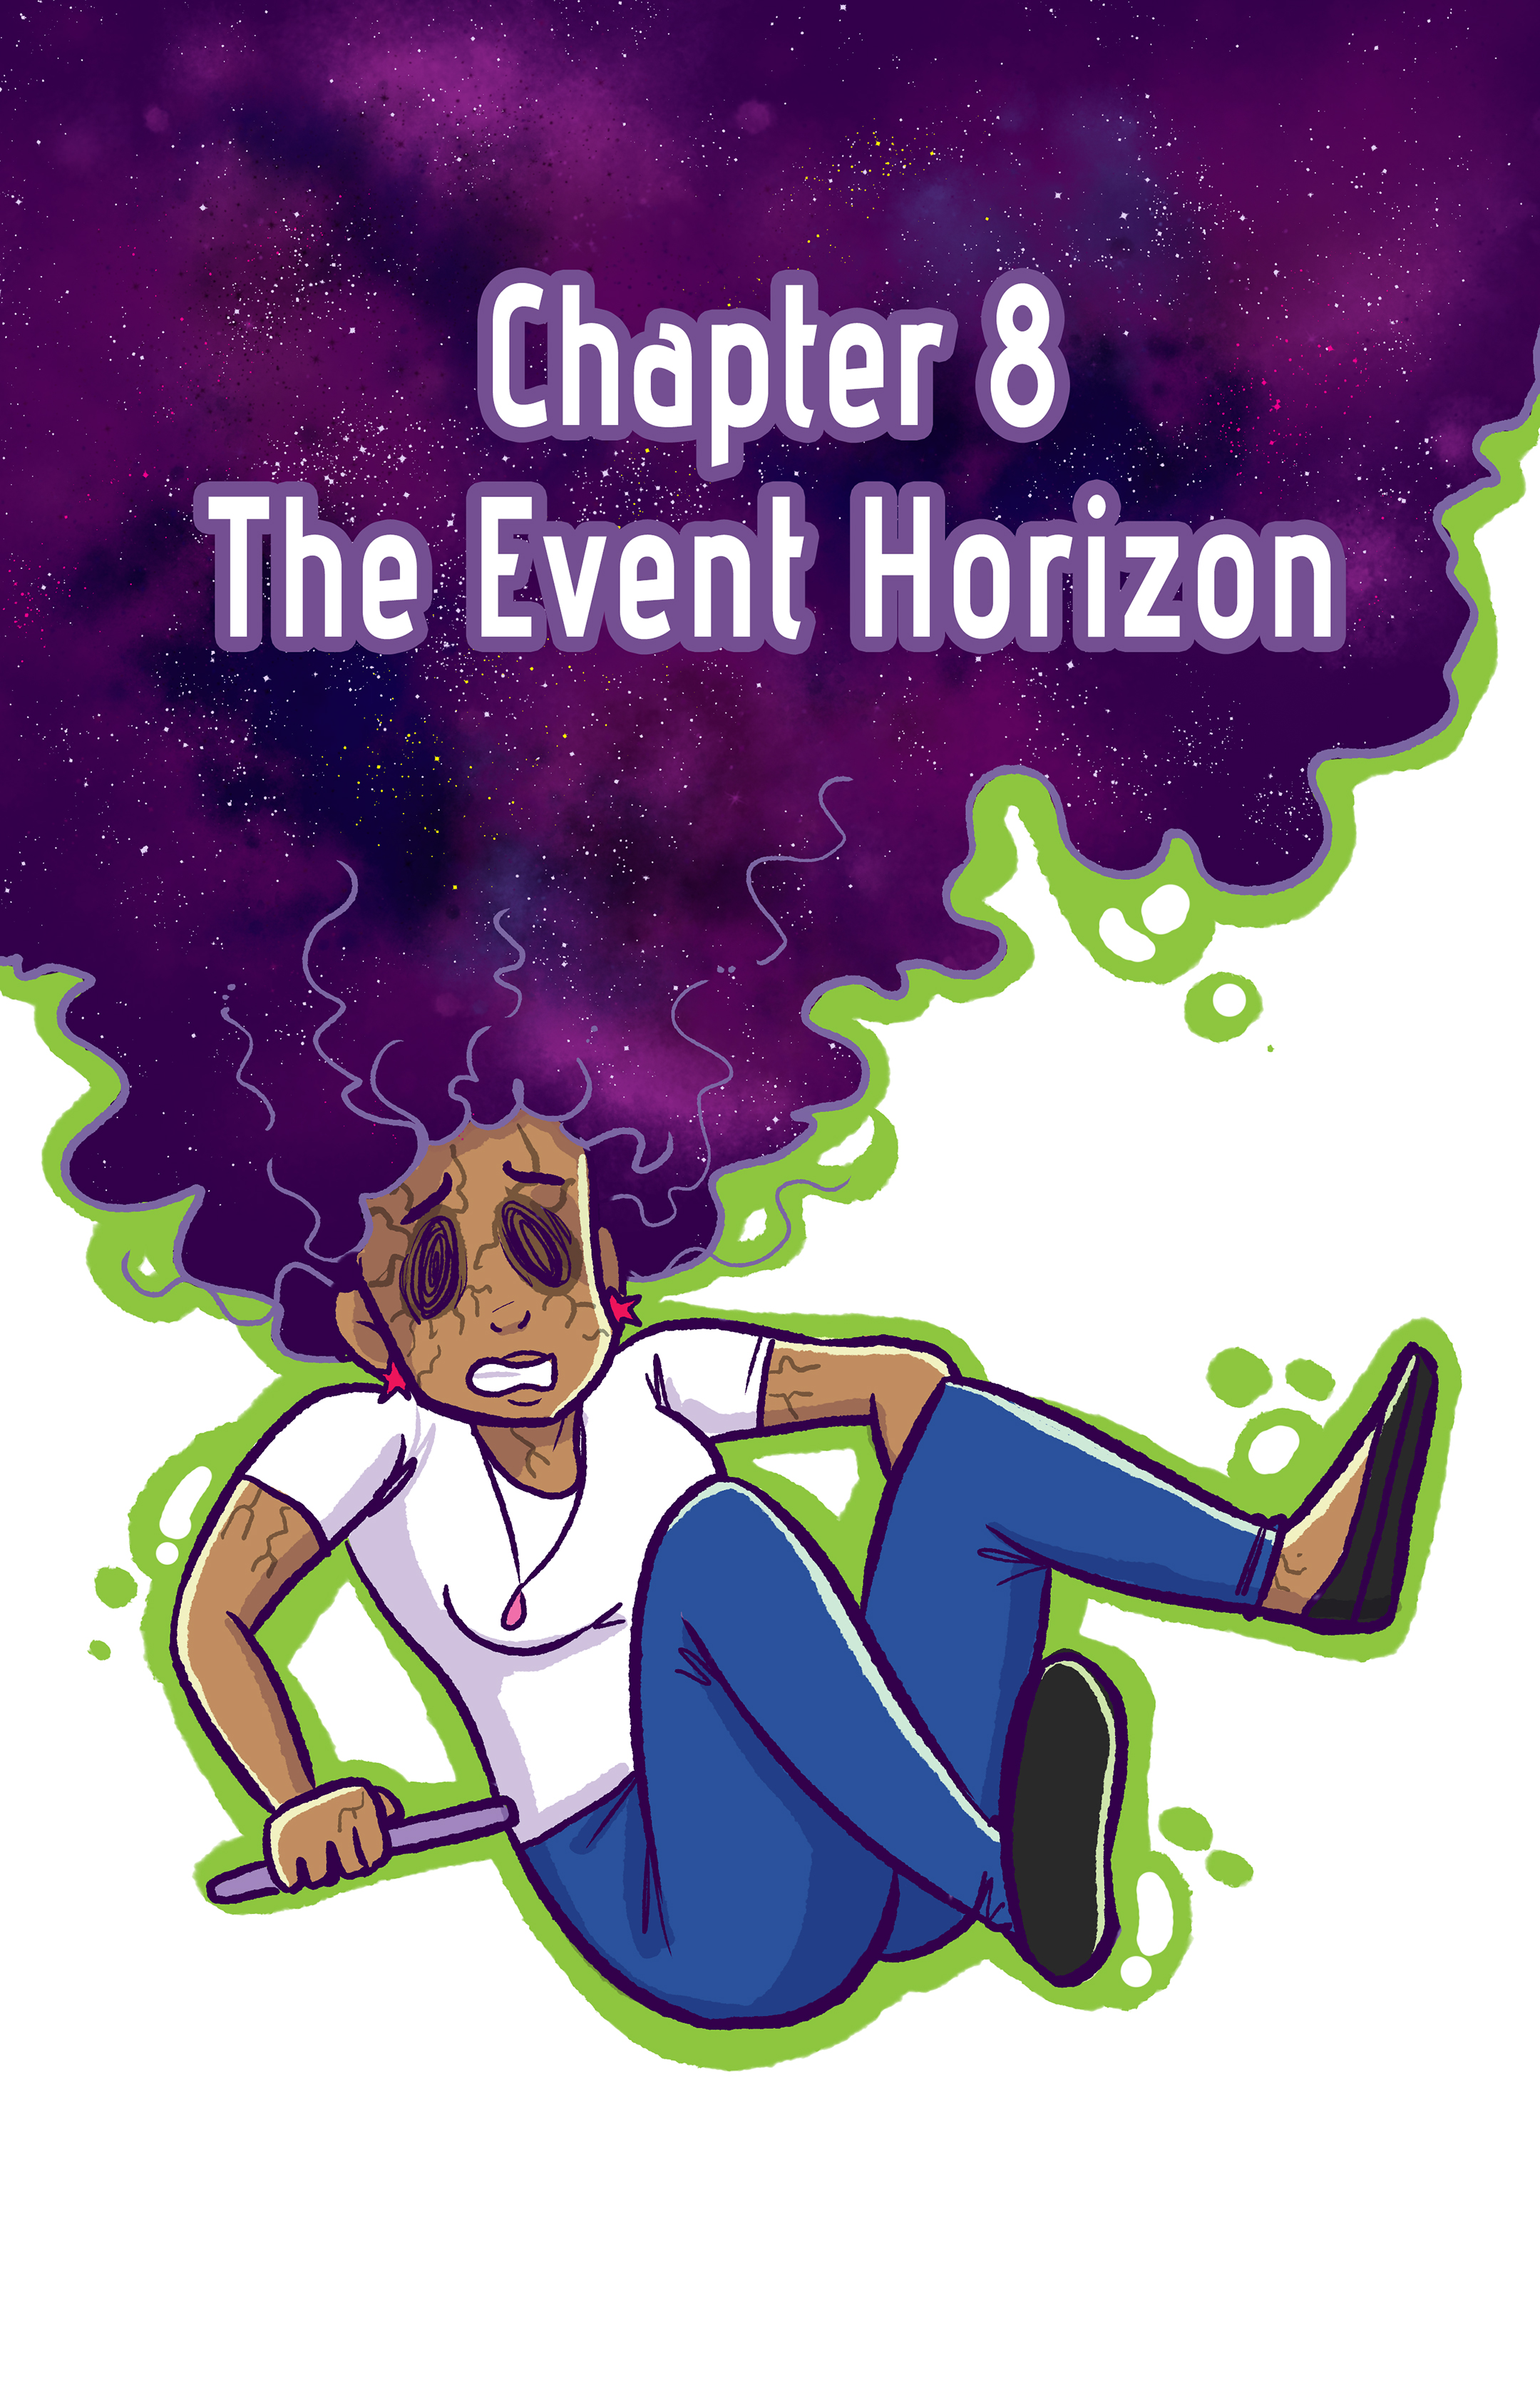 Chapter 8 – The Event Horizon